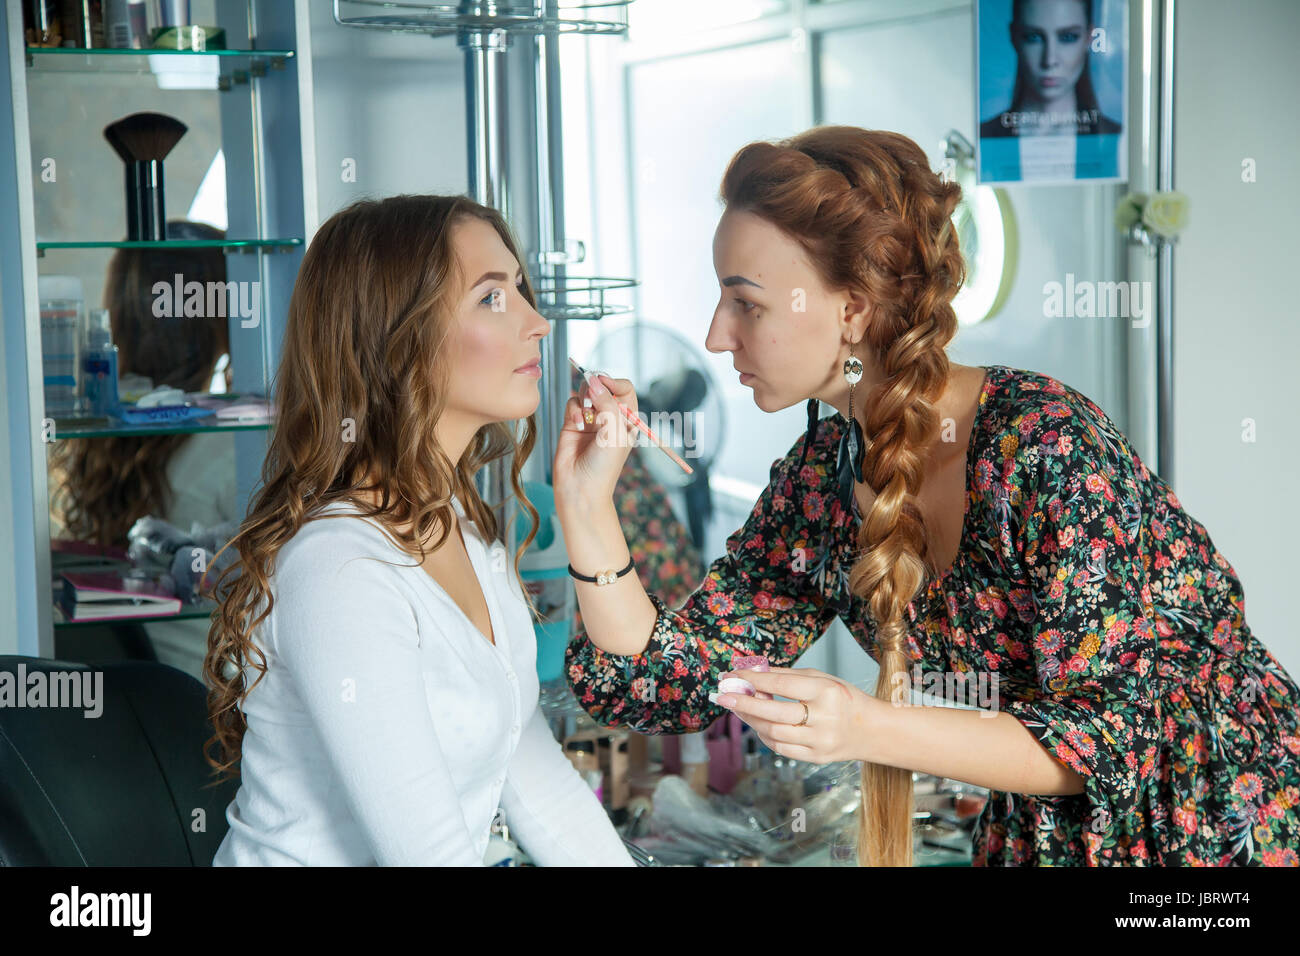 Make up artist do a professional makeup - Stock Image